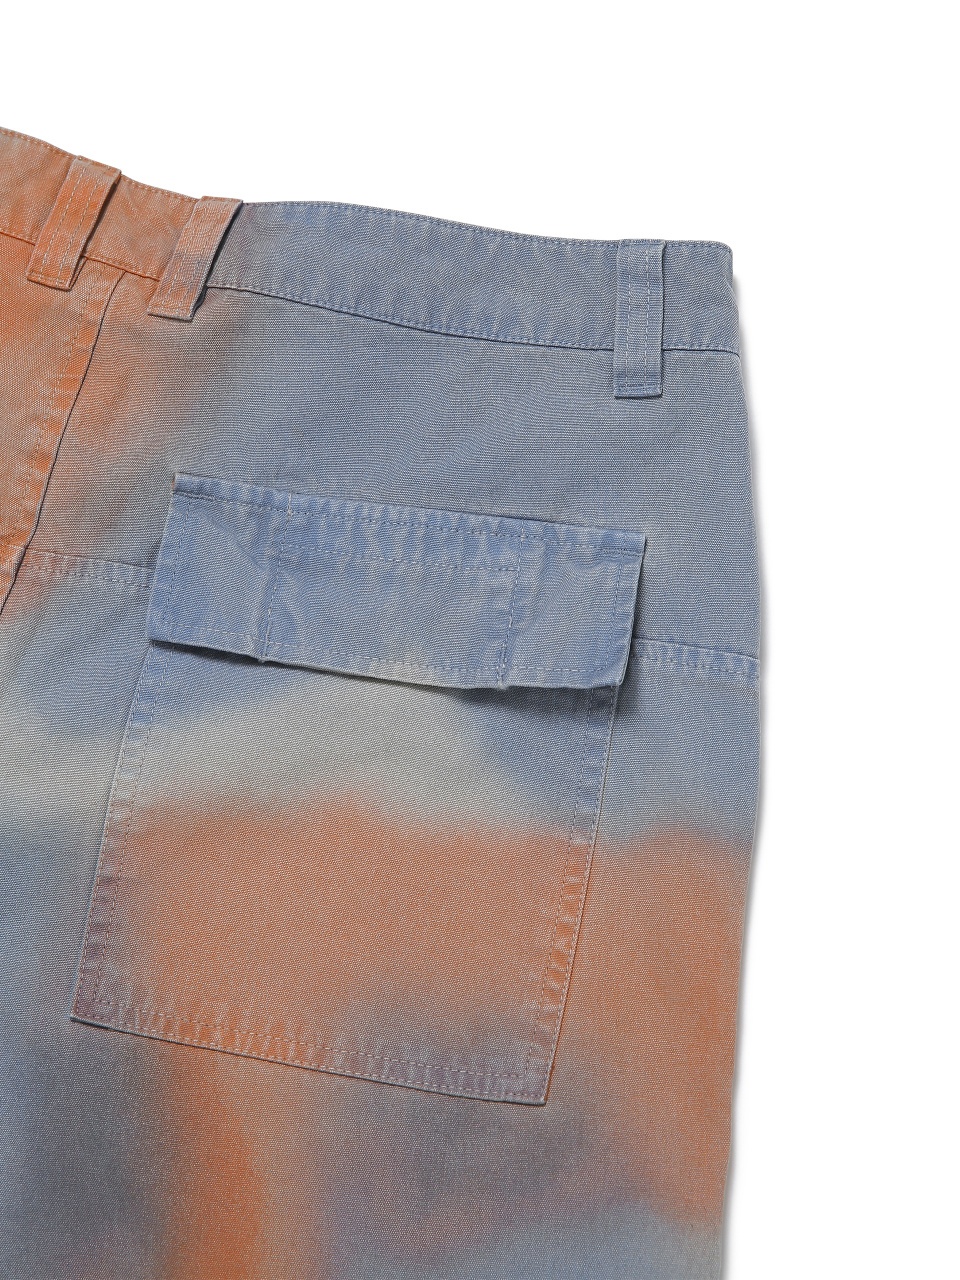 디스이즈네버댓(THISISNEVERTHAT) Fatigue Pant Blue/Orange